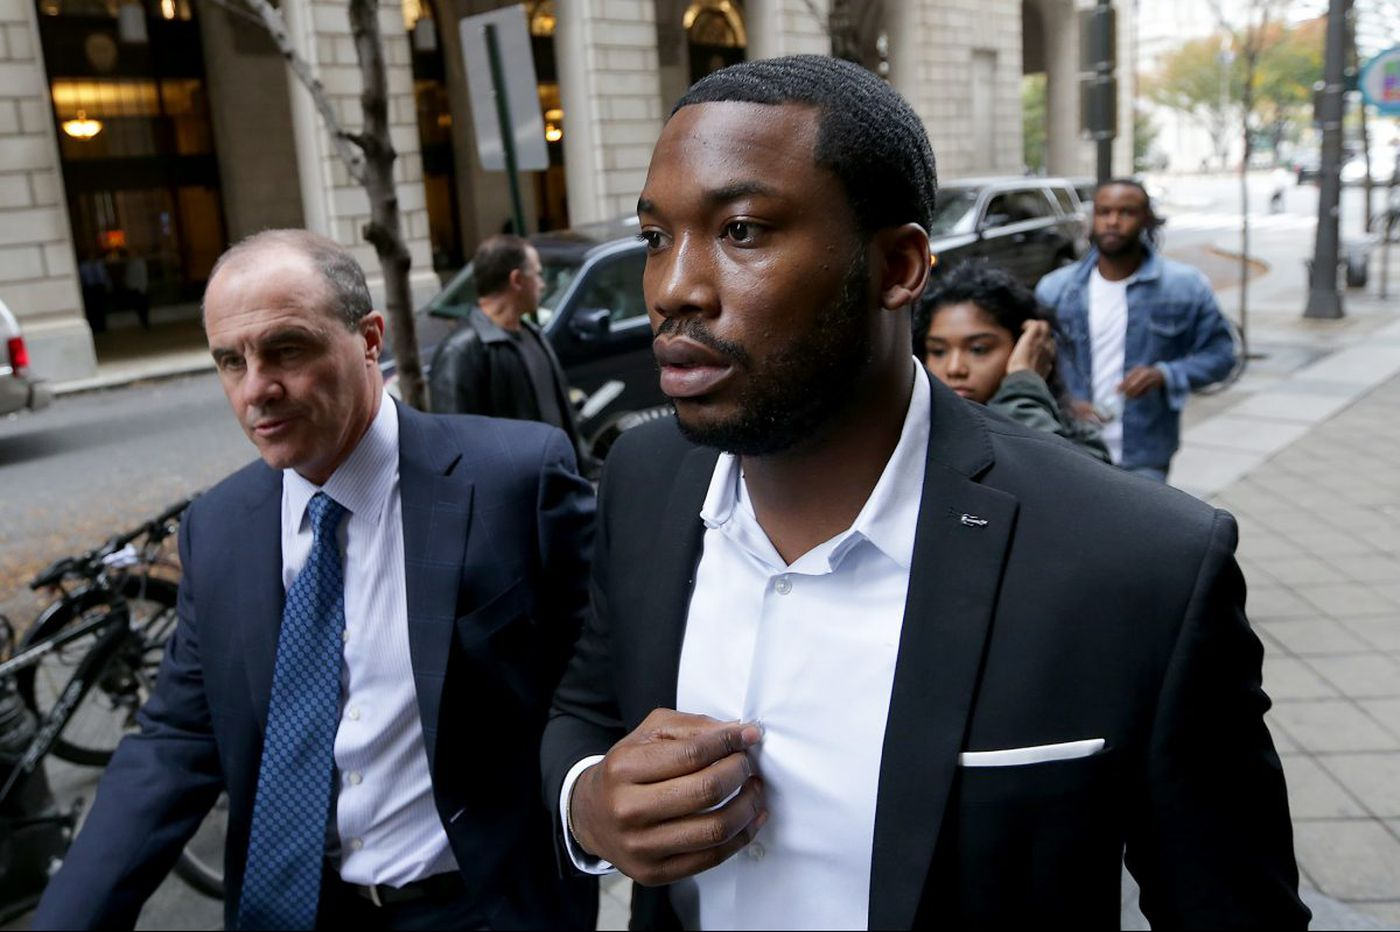 Kevin Hart, Jay-Z, other celebs respond to Meek Mill's prison sentence